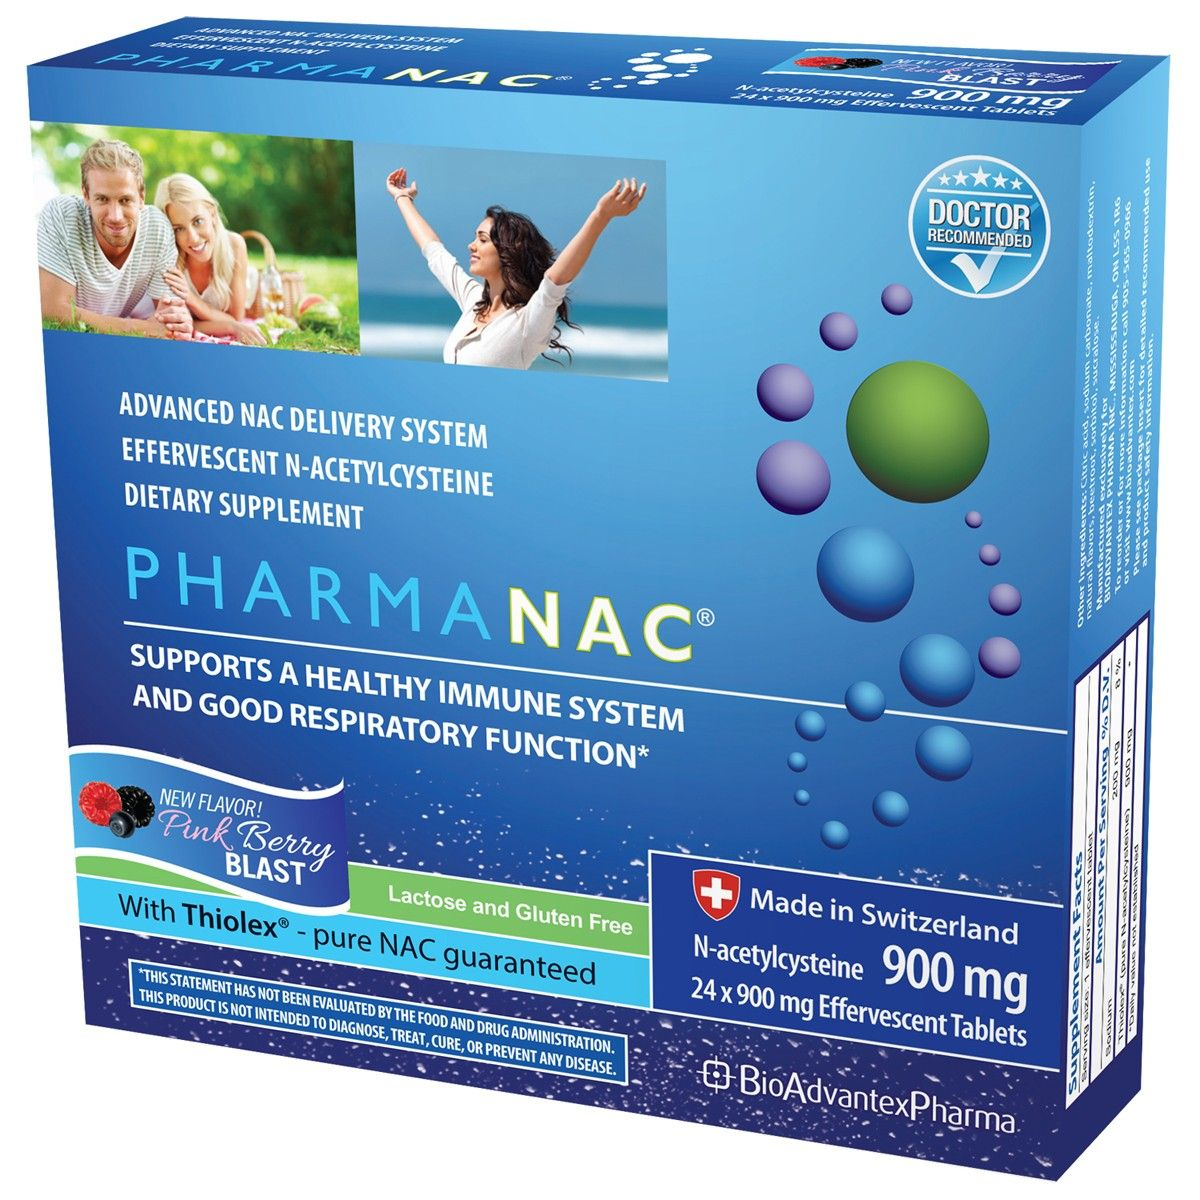 Pharmanac 900mg Effervescent Tablets Pure N Acetylcysteine Nac Pink Berry Blast Each Box Contains 24 Effervescent Tablets In 2020 Pure Products Tablet Berries